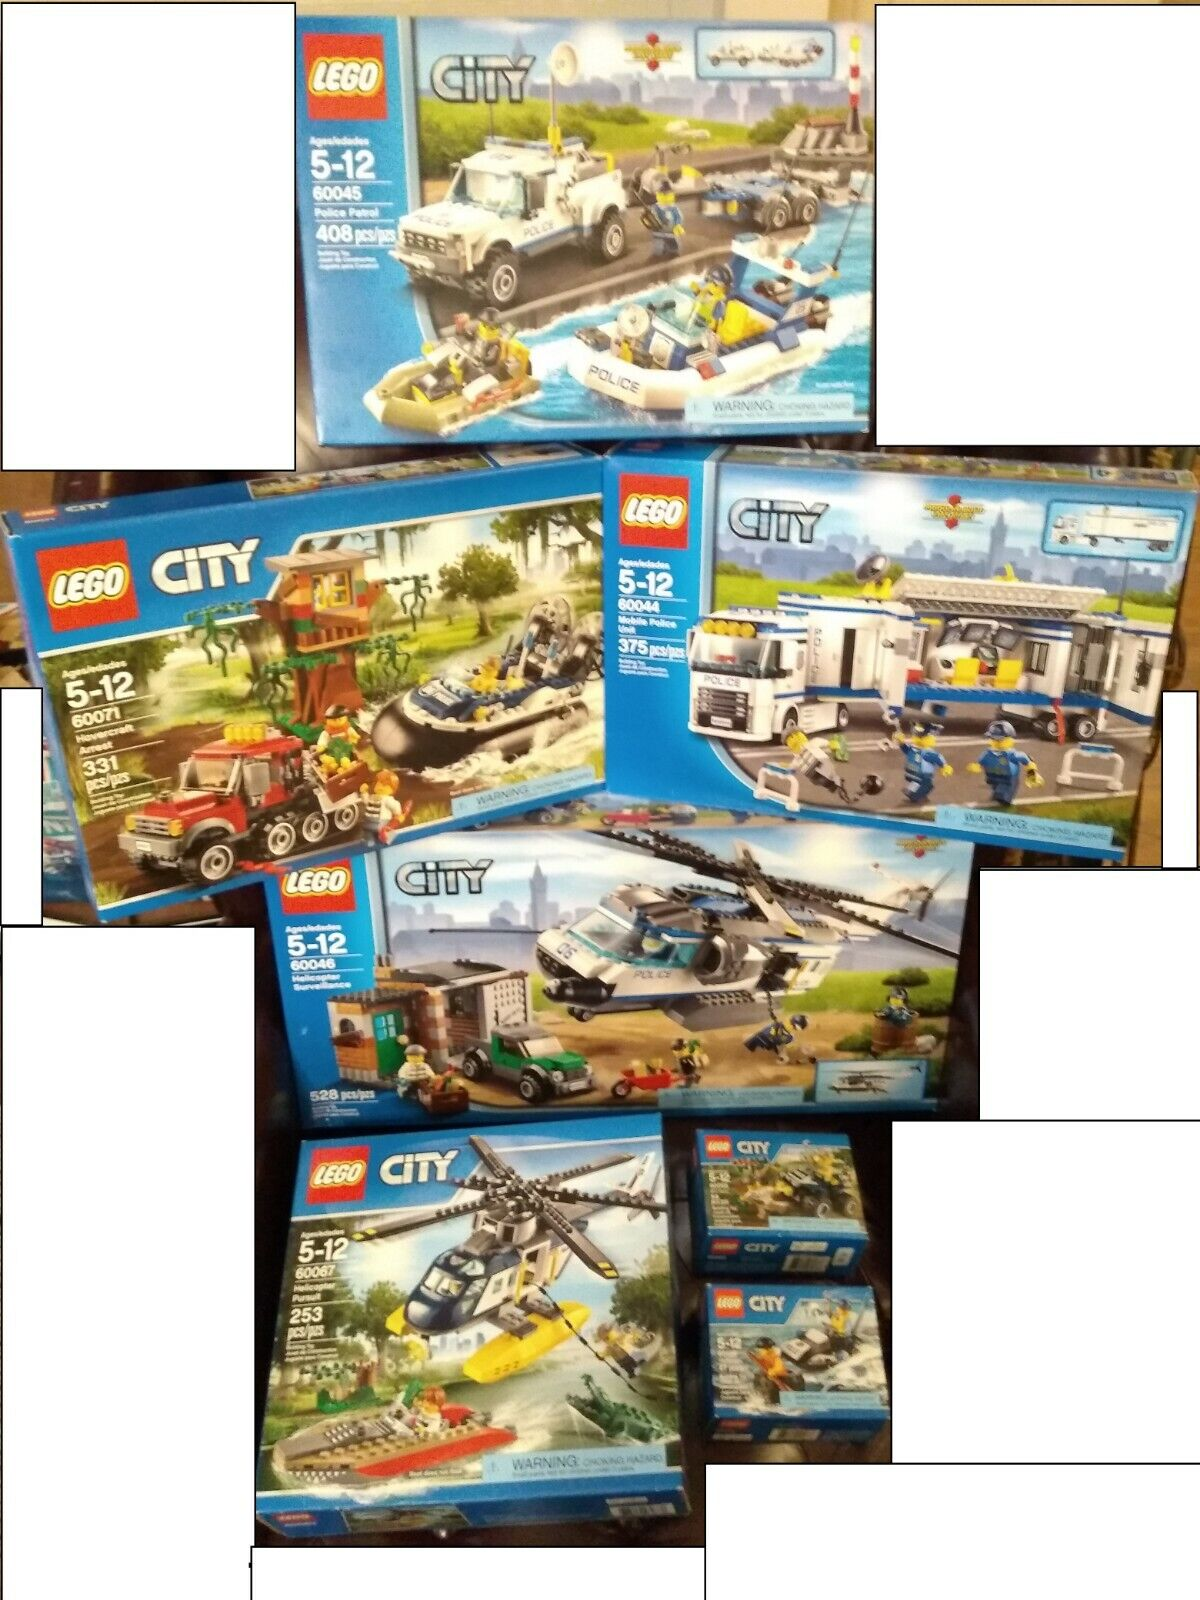 NEW 7 LEGO City Police Sets 60065 60067 60045 60046 60071 60044 60126 Retirot